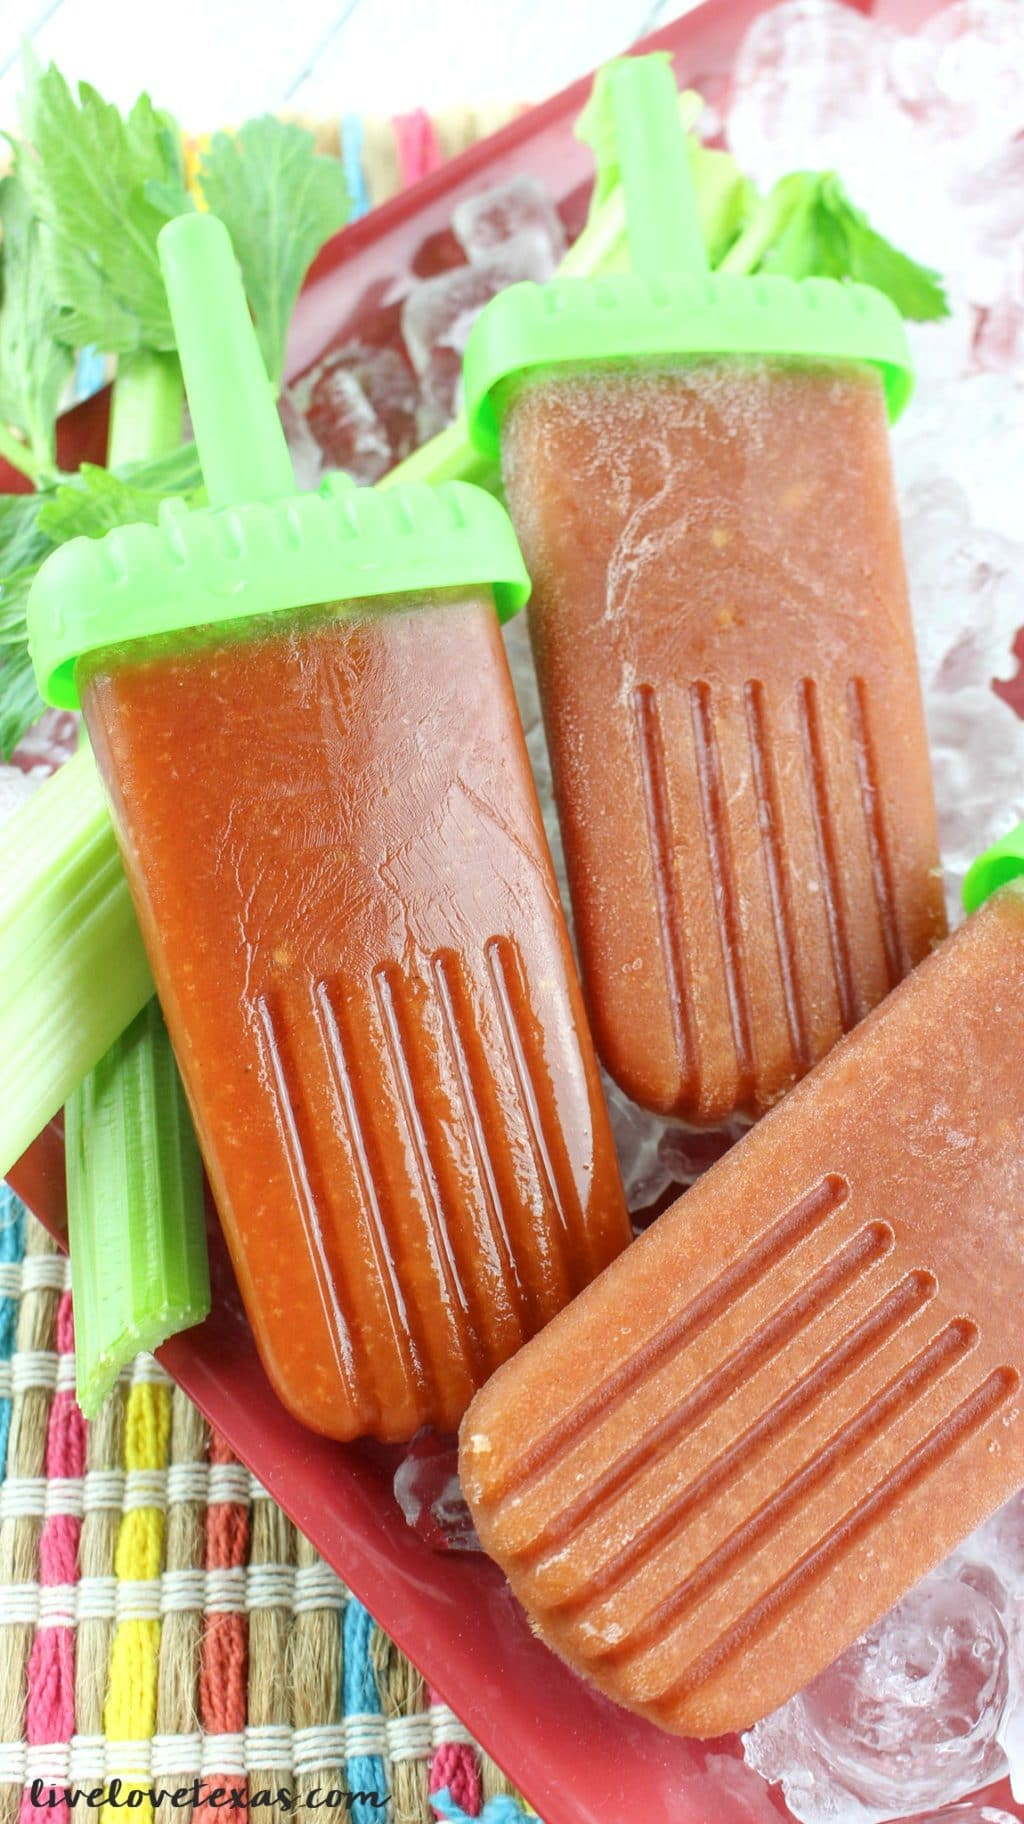 Get nostalgic for the homemade ice pops from your childhood with an adult twist! Try this cold and refreshing Boozy Bloody Mary Ice Pops recipe.